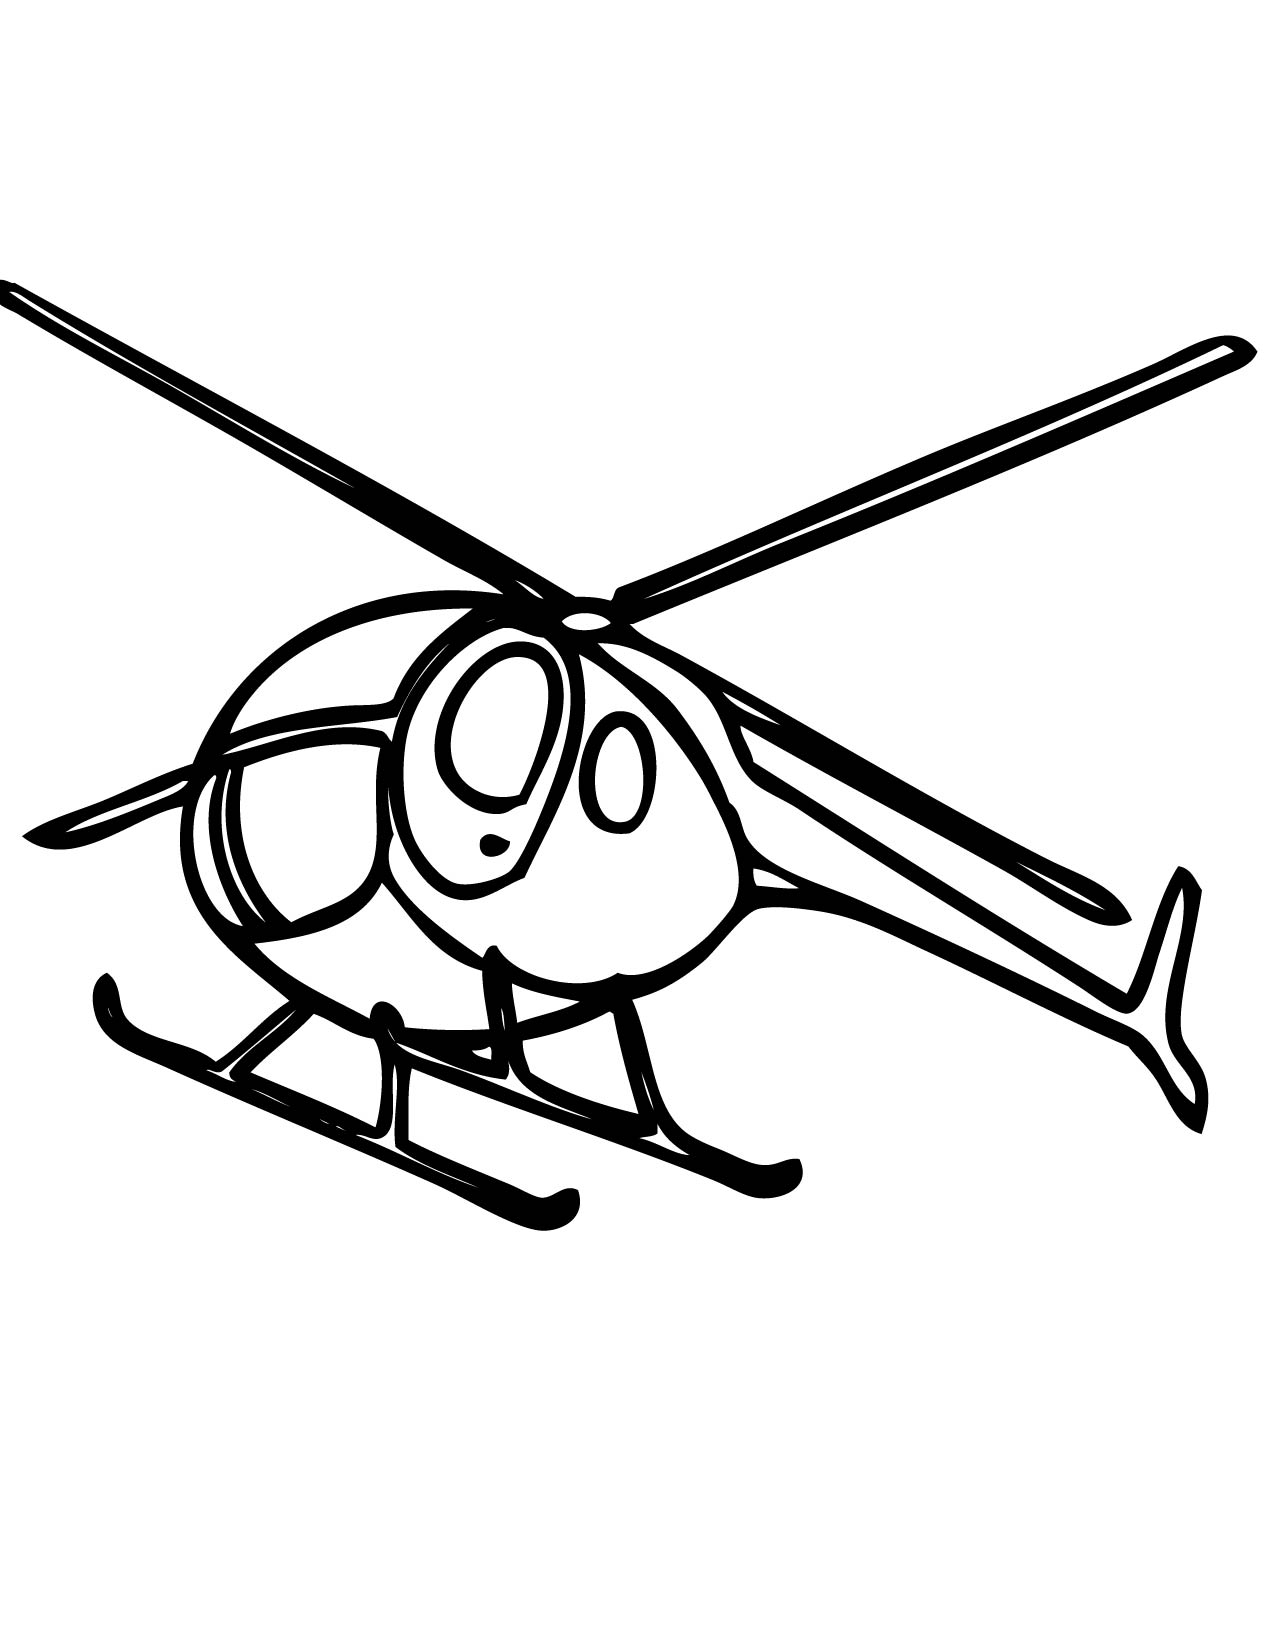 Apache Helicopter Drawing At Getdrawings Com Free For Personal Use